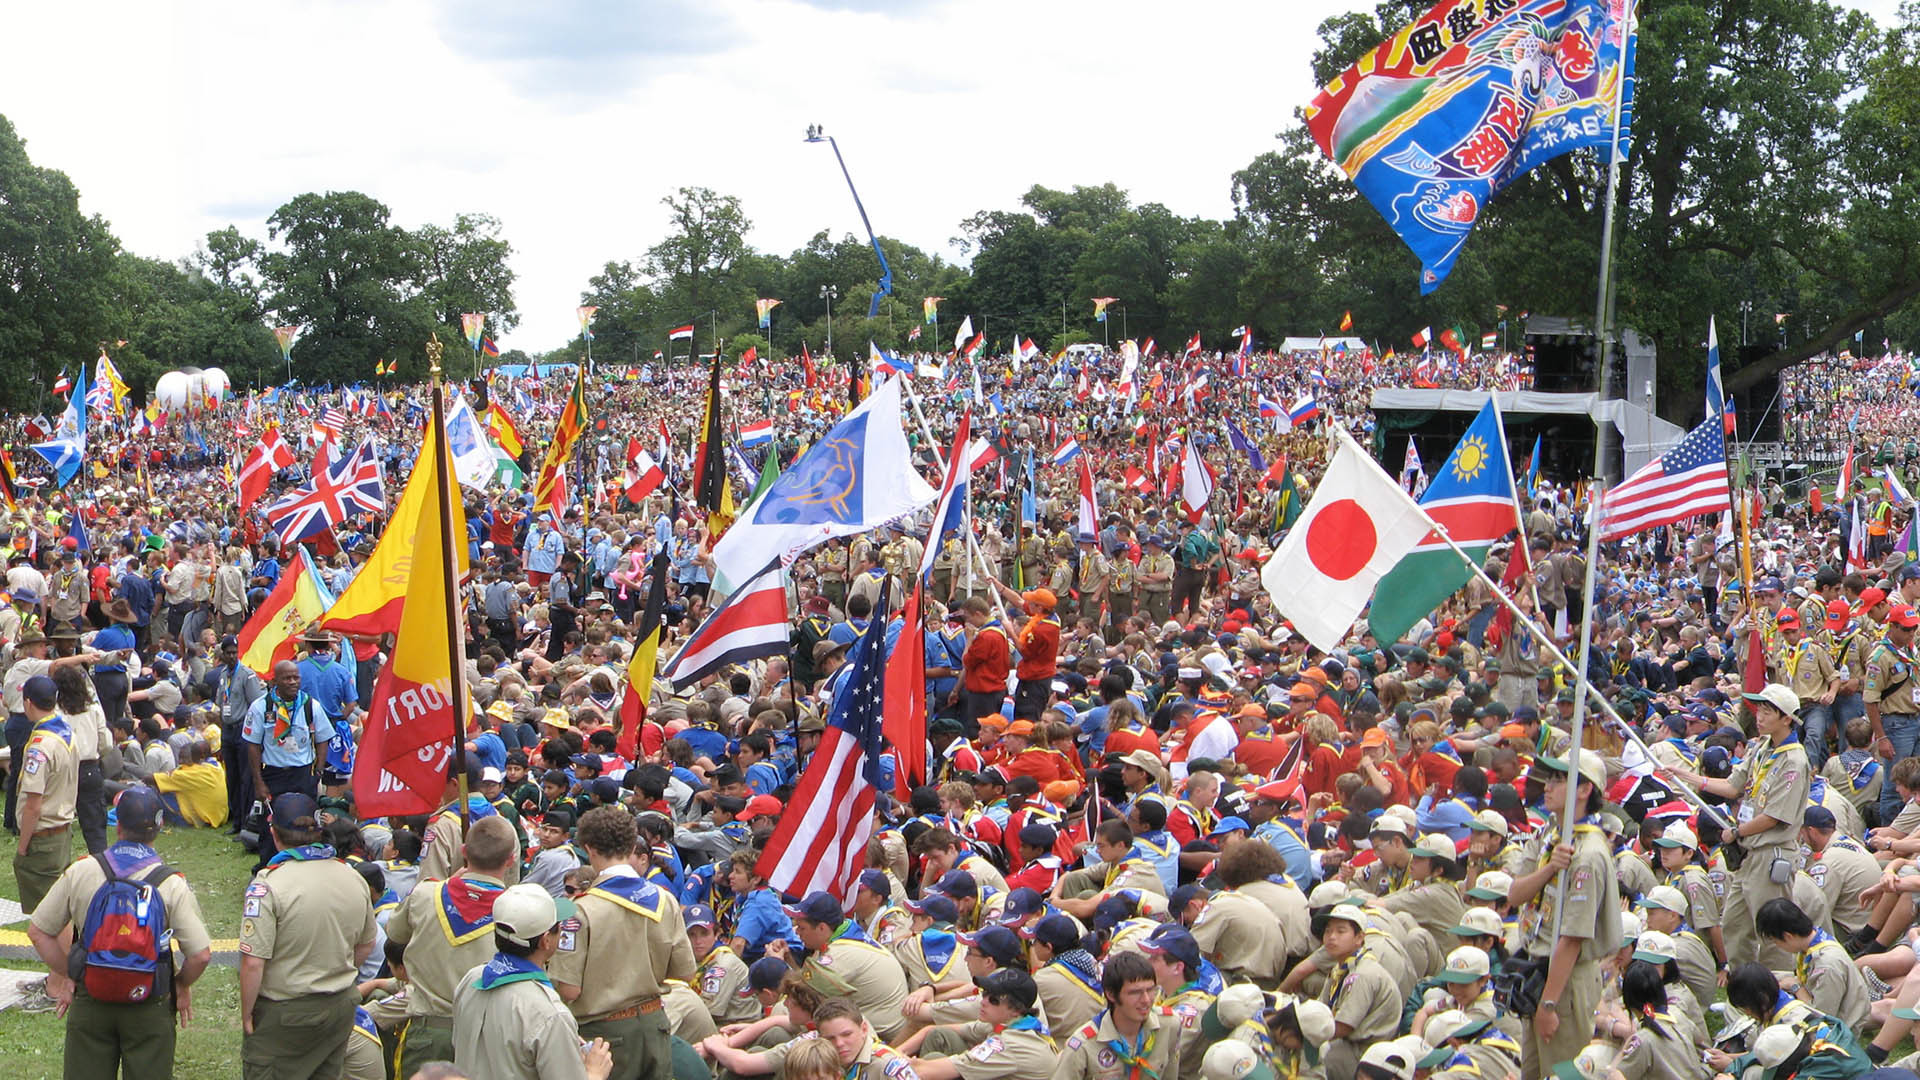 Condoms Required for World Scout Jamboree